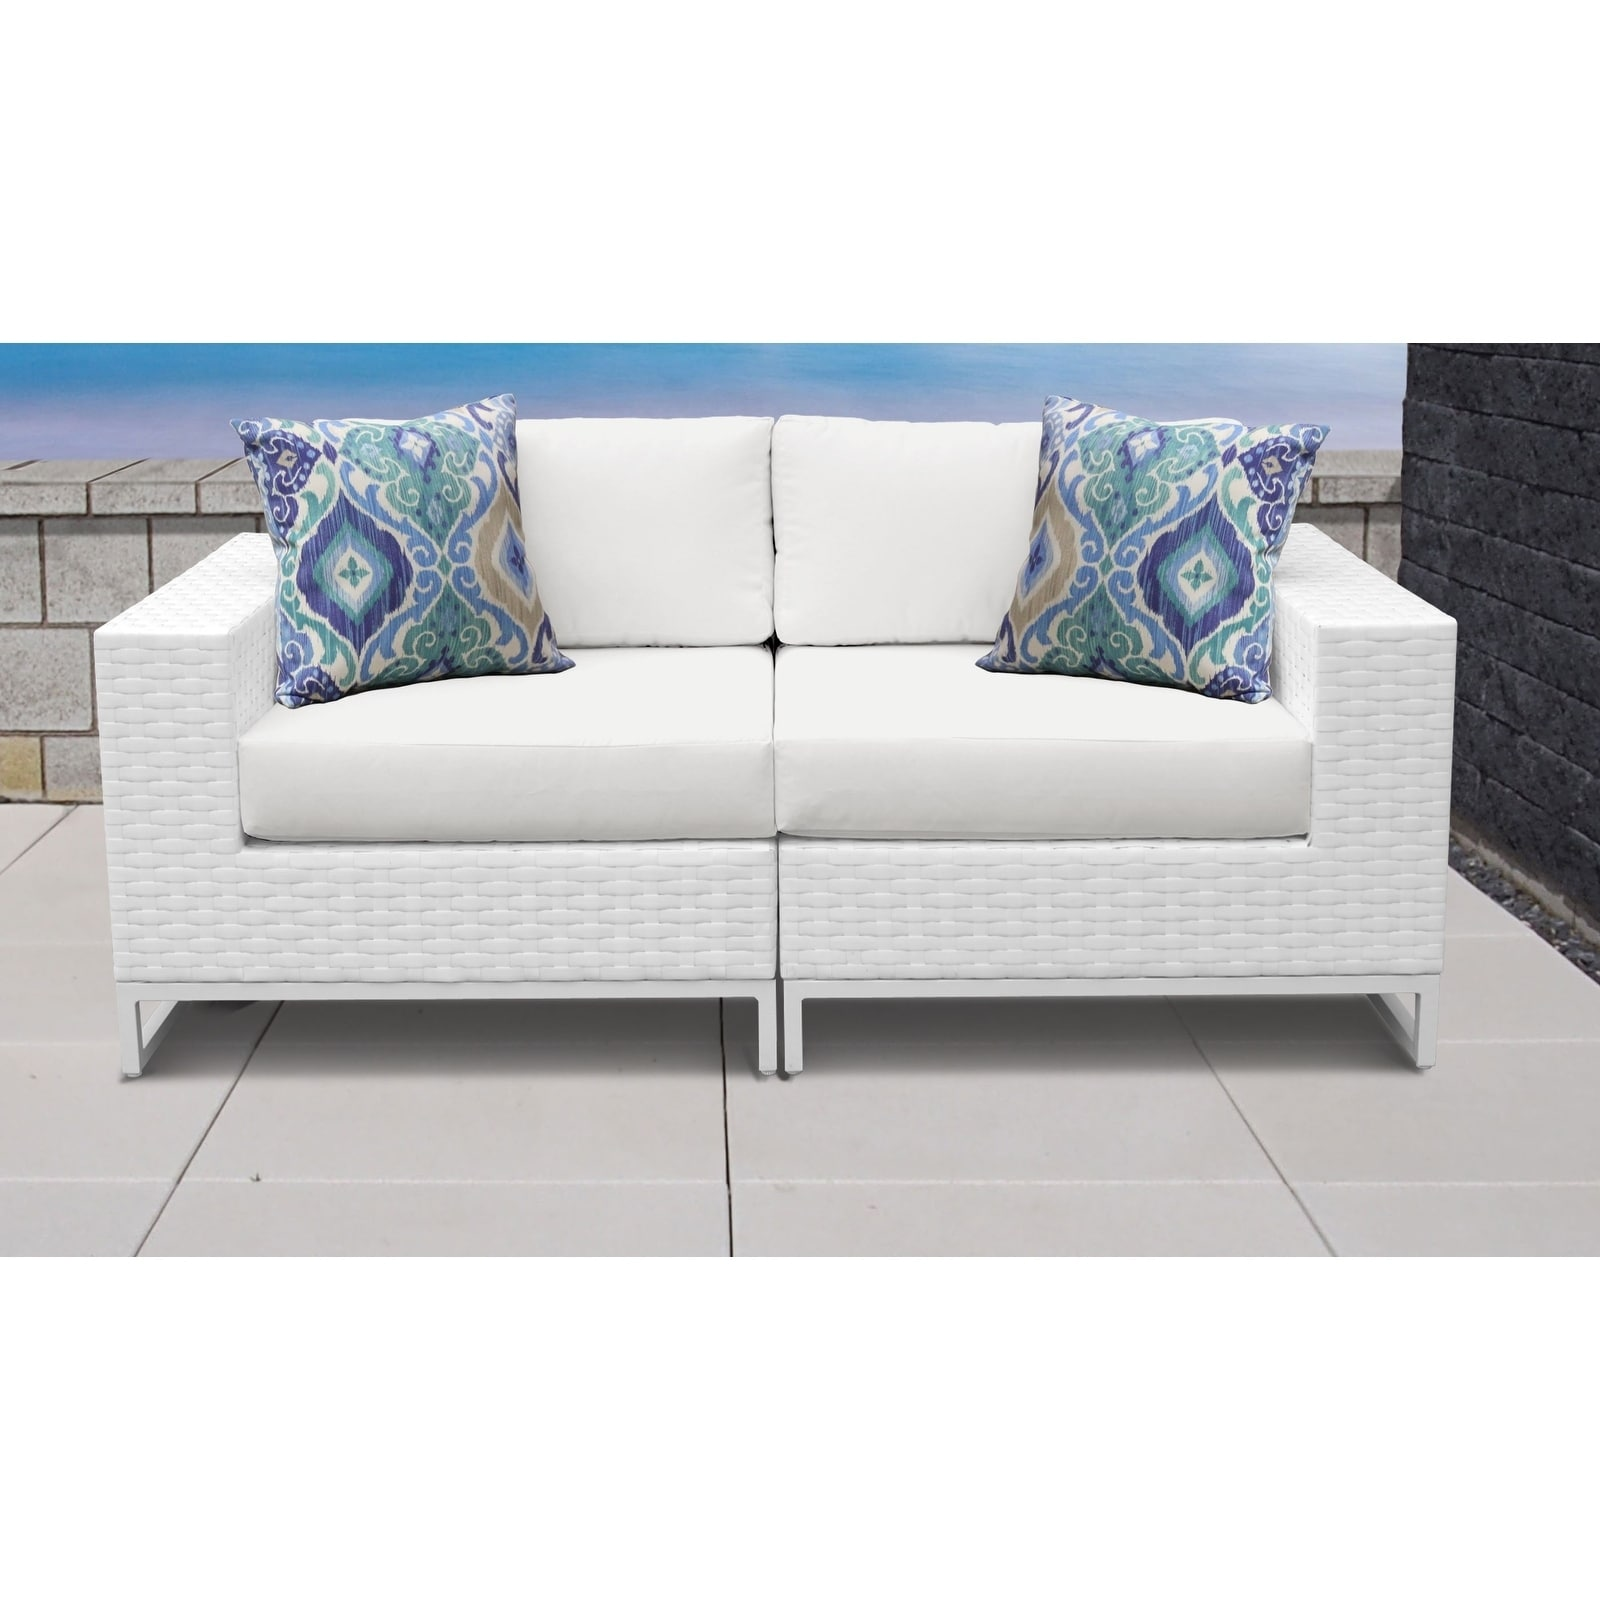 Shop Miami 2 Piece Outdoor Wicker Patio Furniture Set 02a Free